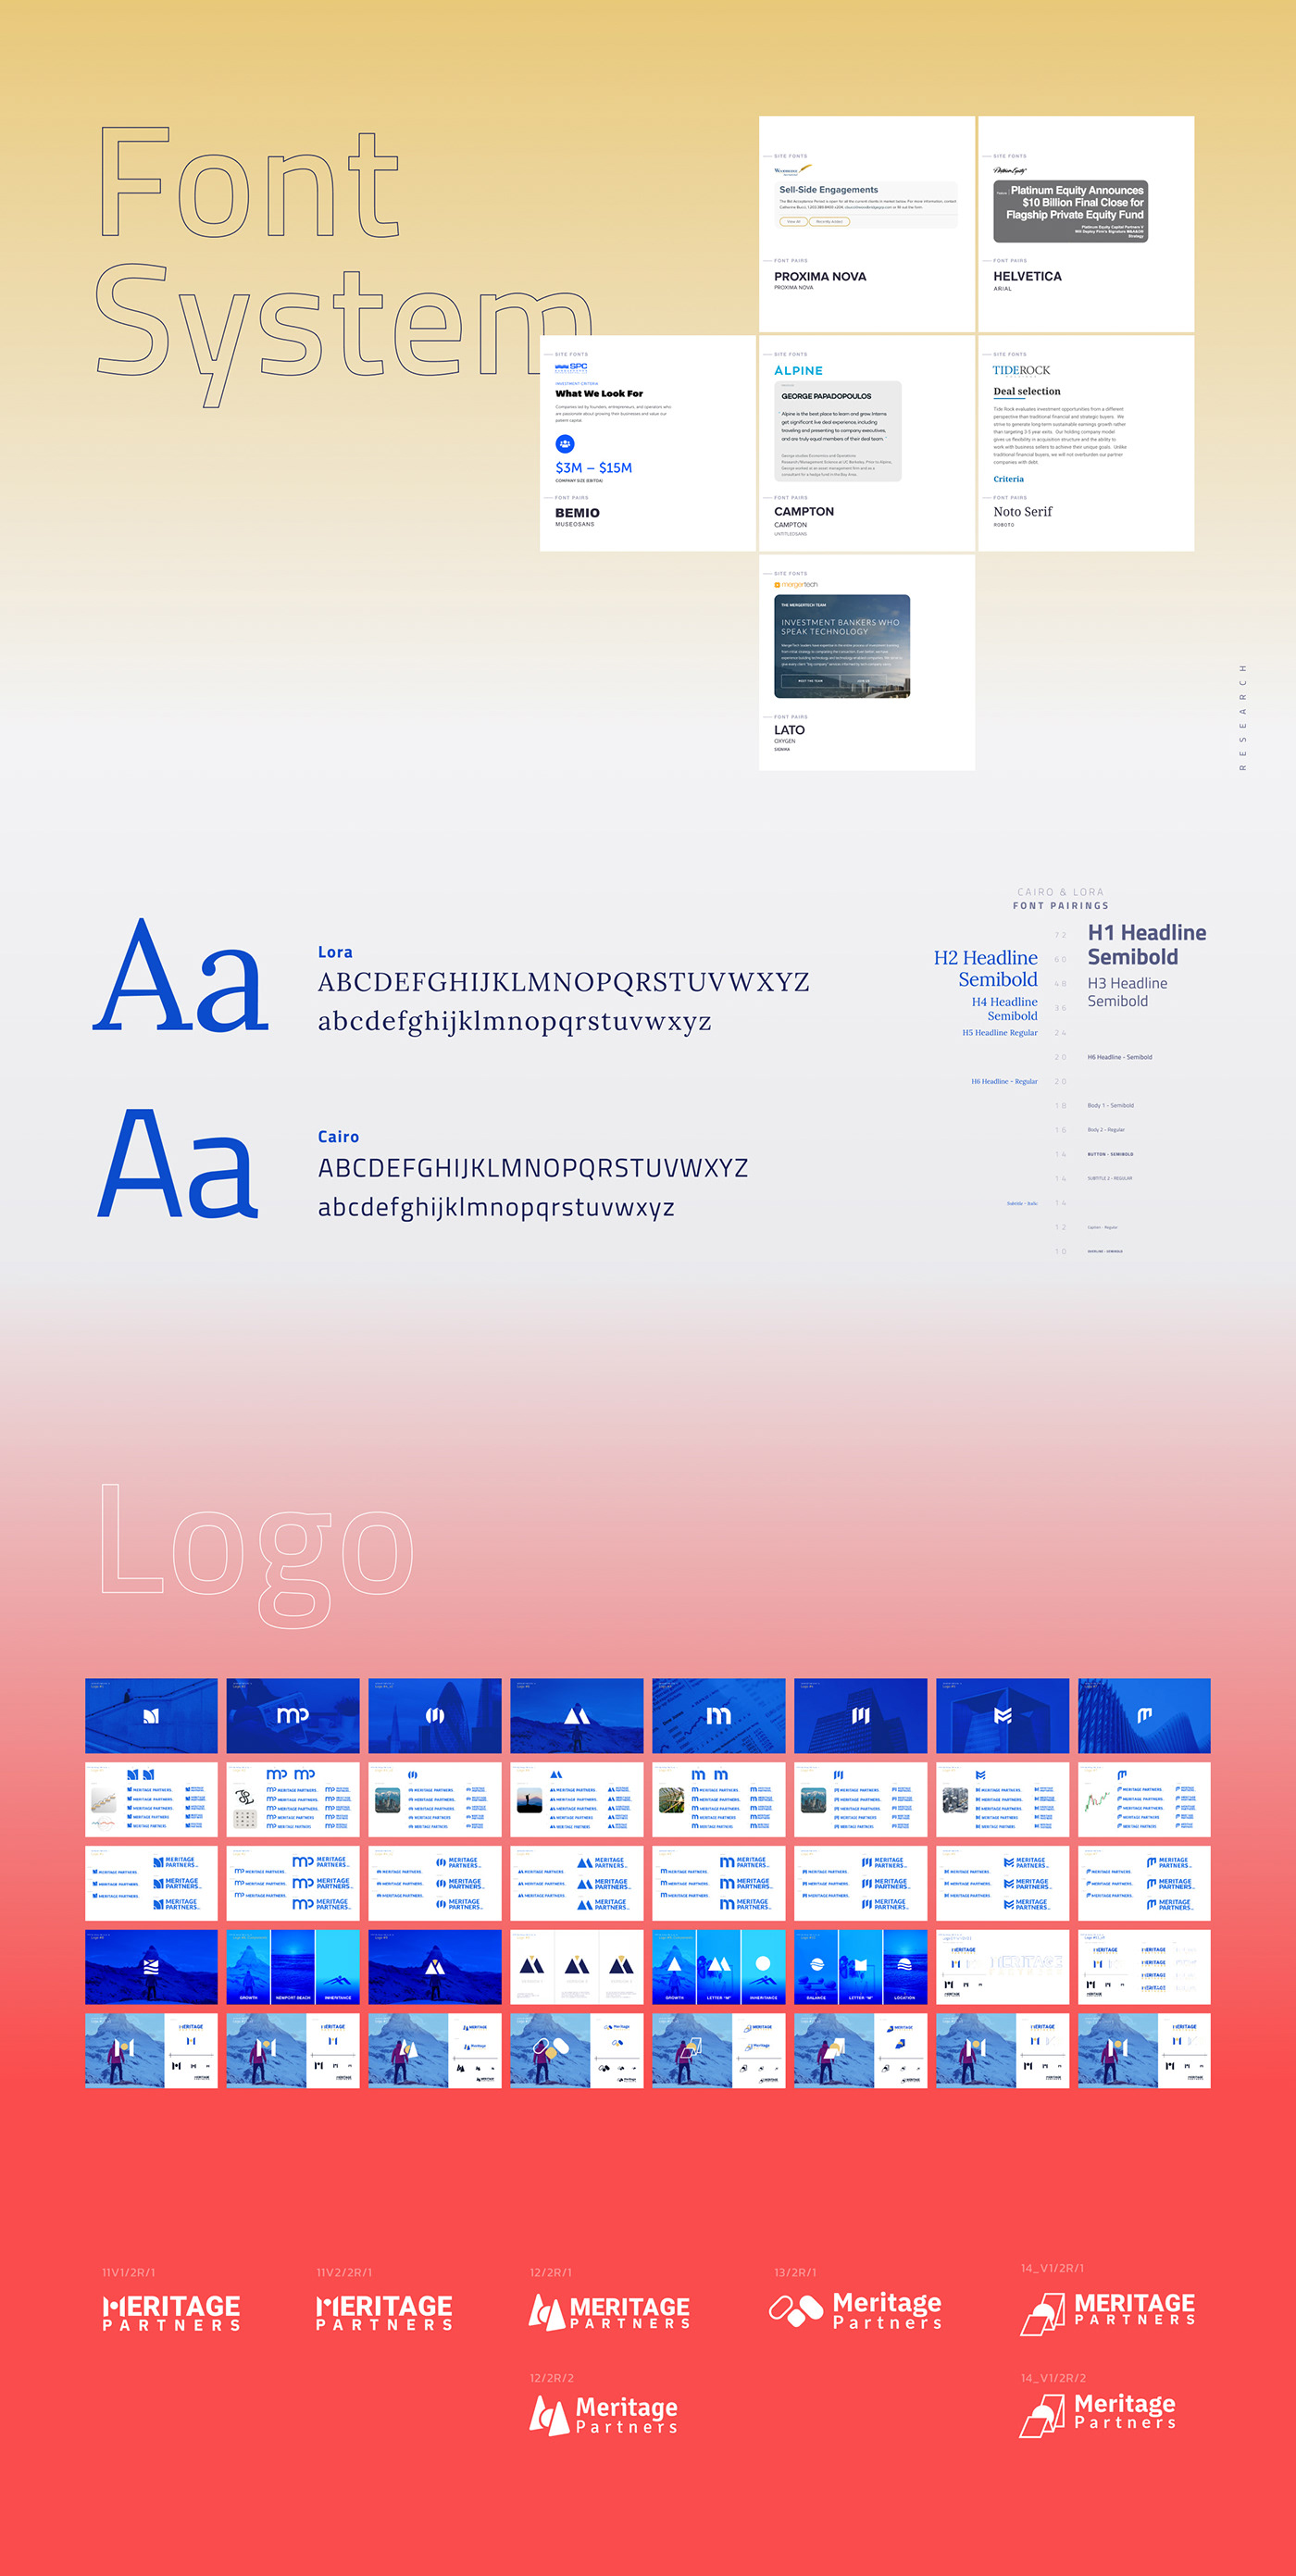 Font research and font system as a part of brand identity and rebranding process. Logo versions